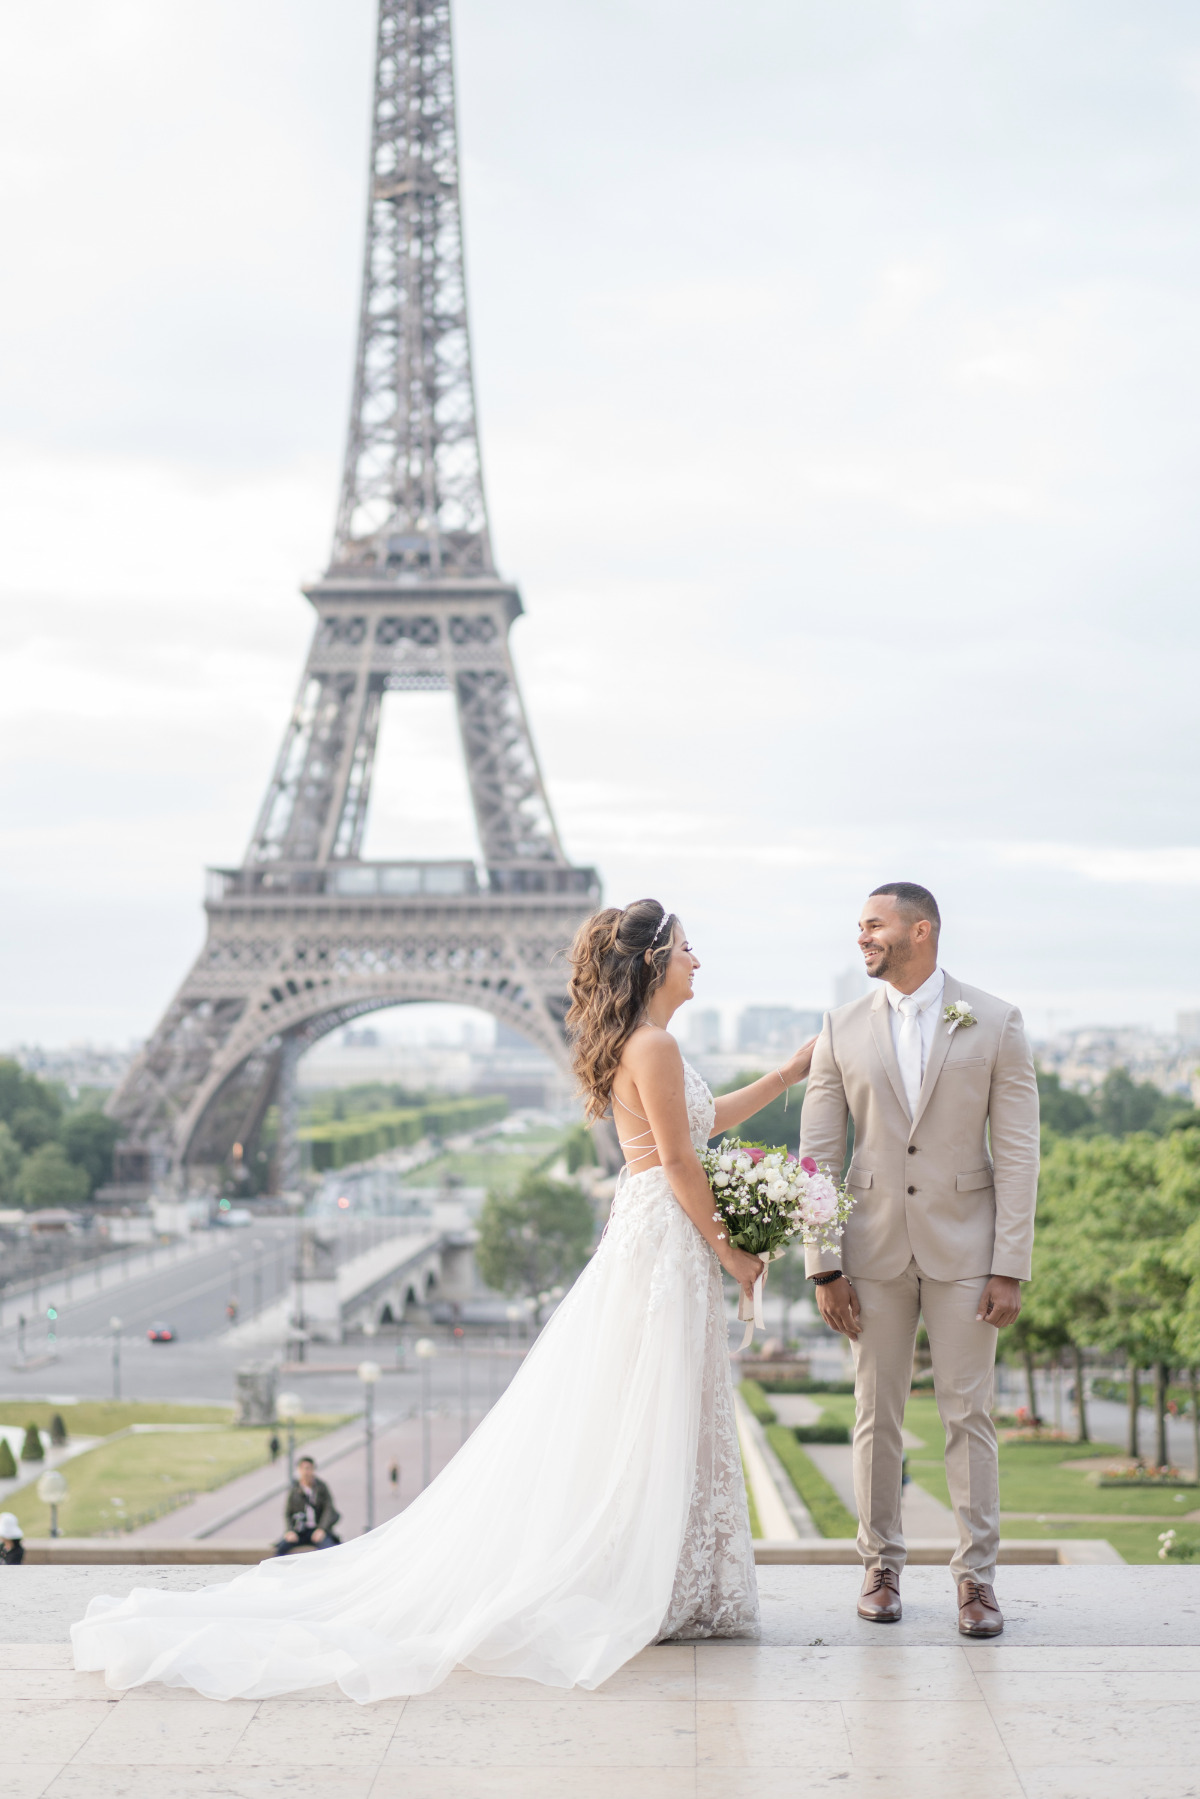 sunrise elopement in front of the the Eiffel Tower